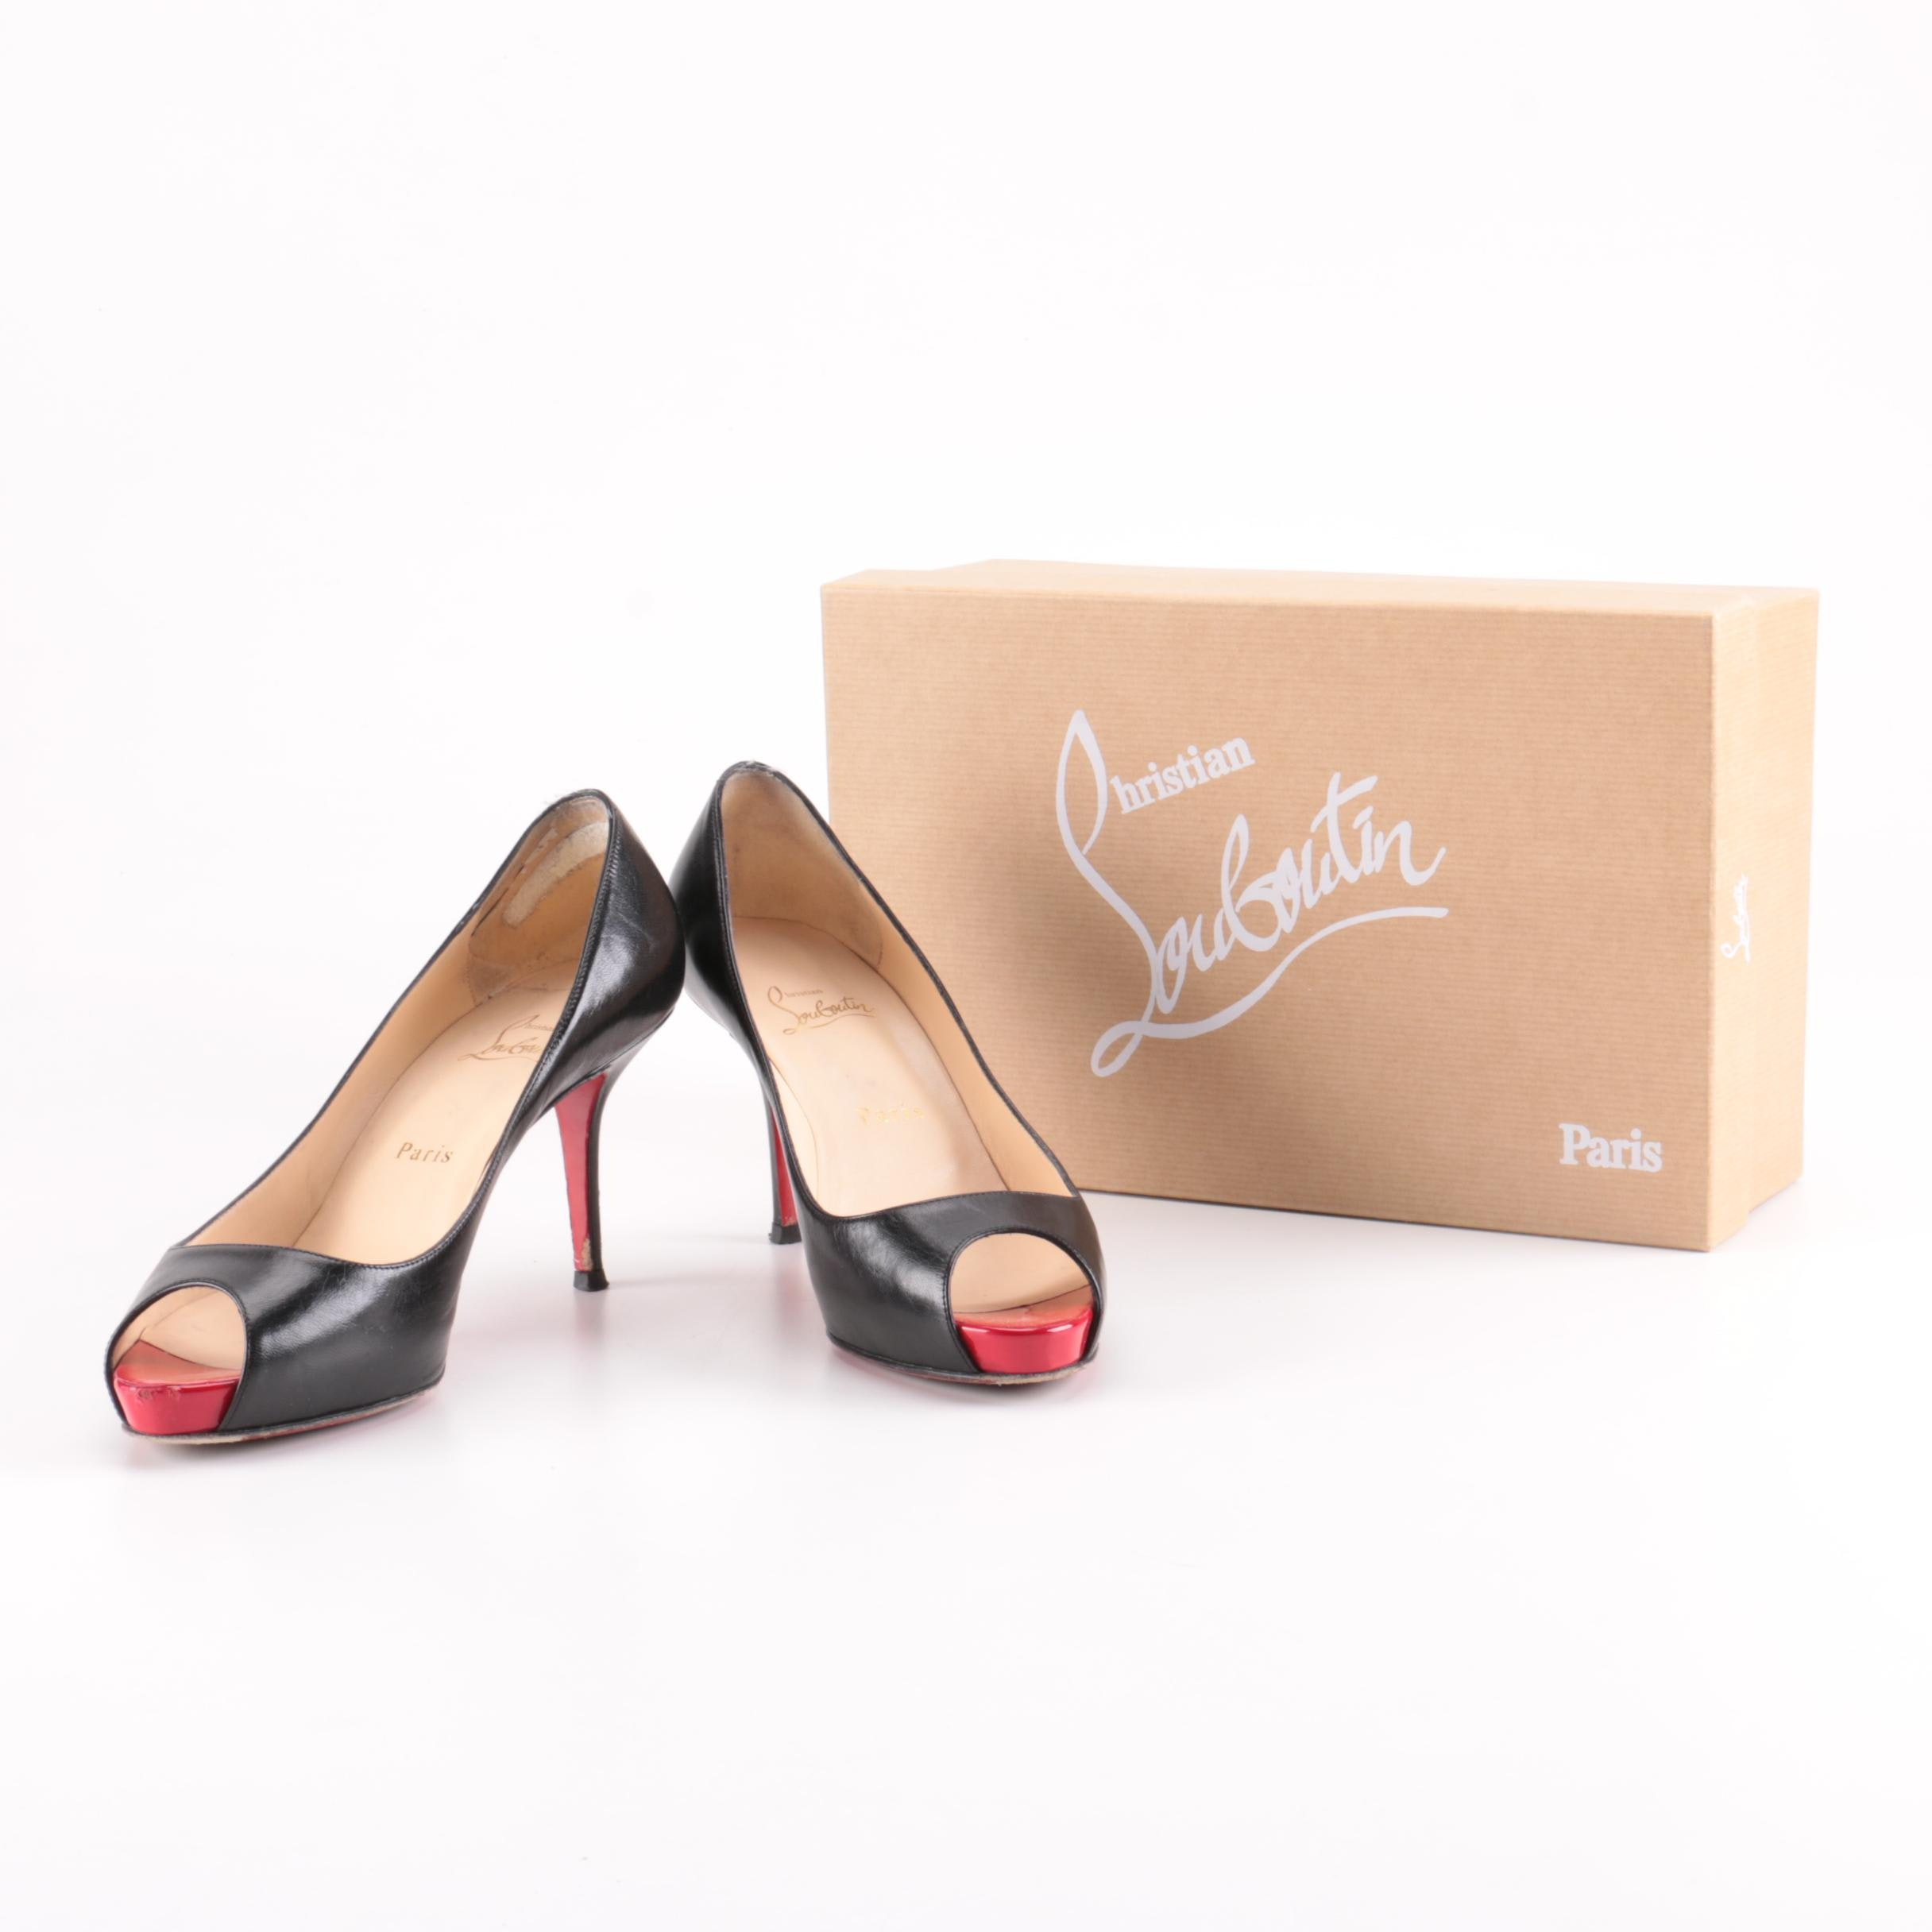 Christian Louboutin Red and Black Peep Toe Pumps